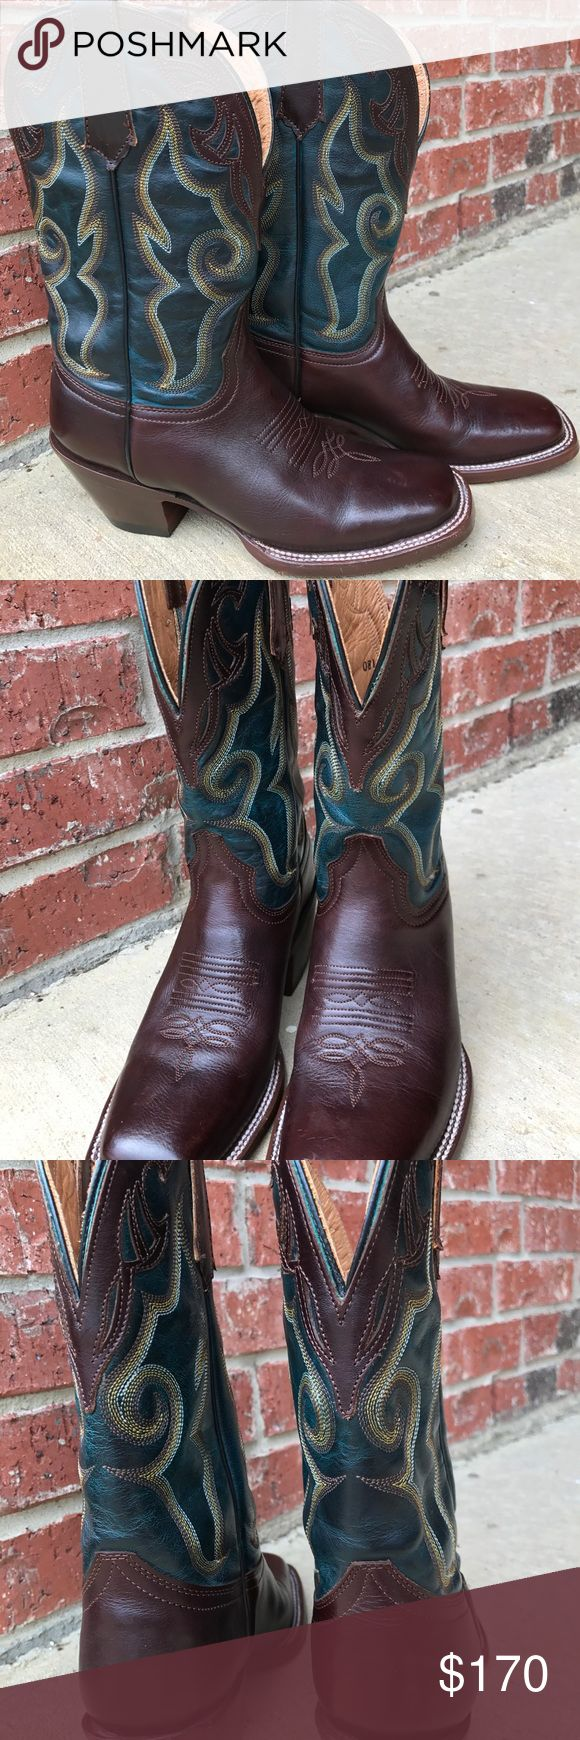 Stetson teal boots Beautiful chocolate brown, distressed dark turquoise/ teal, size 6 square toe leather bottom cowgirl boots, dancing style with rubber sole, like new. Original insoles. Sole still has full tread. Wore once or twice. Still has original sticker from factory. Stitching still white. Stetson Shoes Heeled Boots